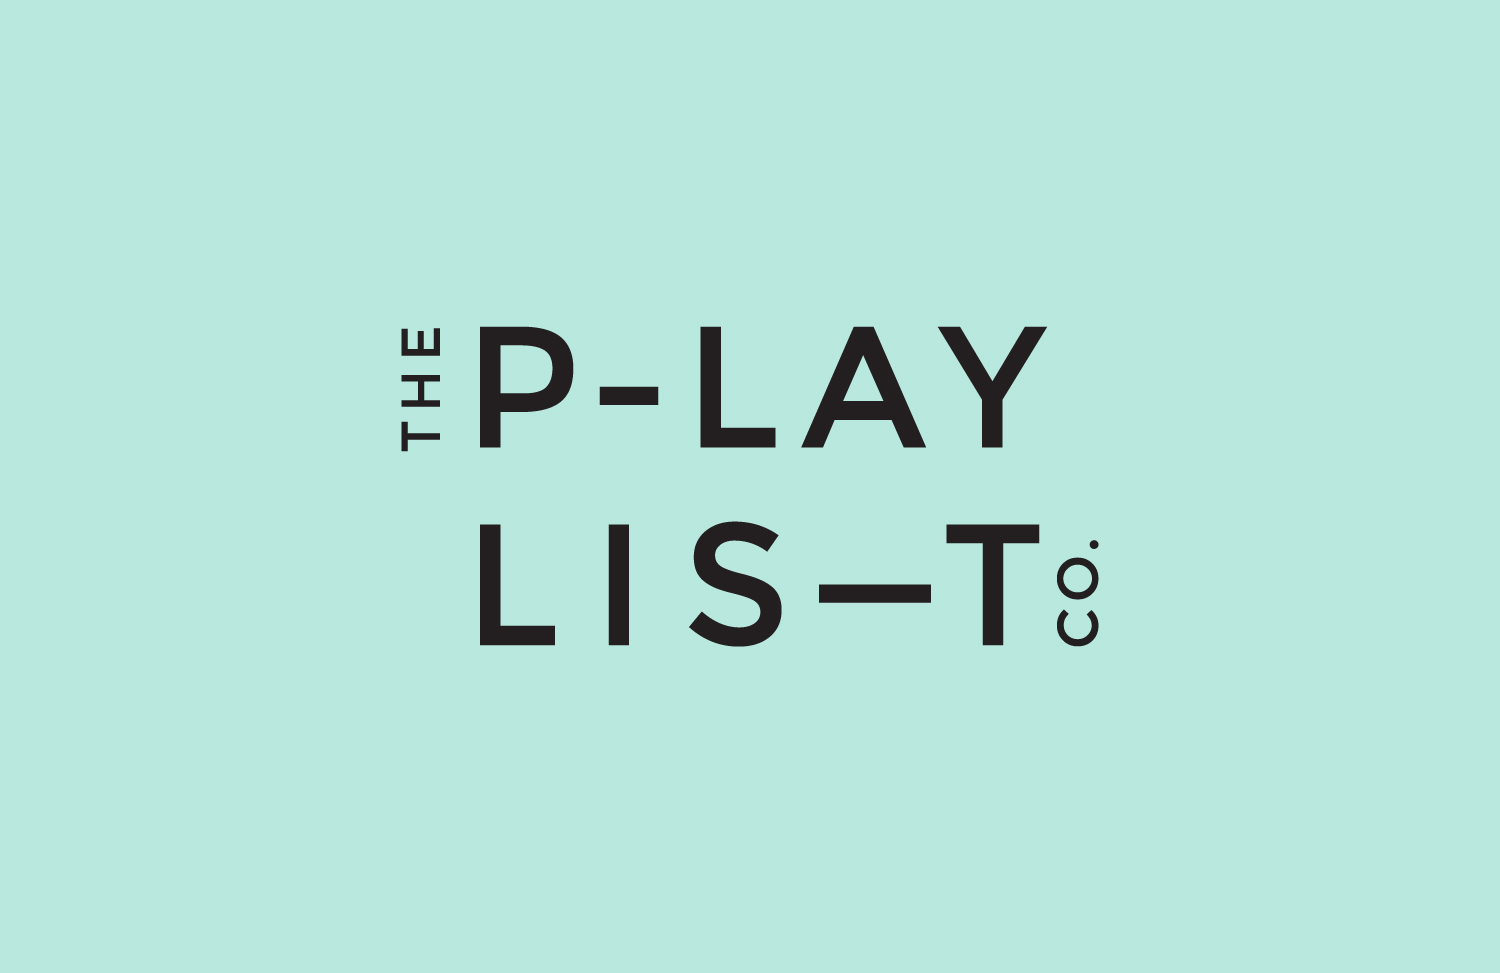 Sans-serif logotype for Toronto based custom event soundtrack business The Playlist Co. by graphic design studio Blok